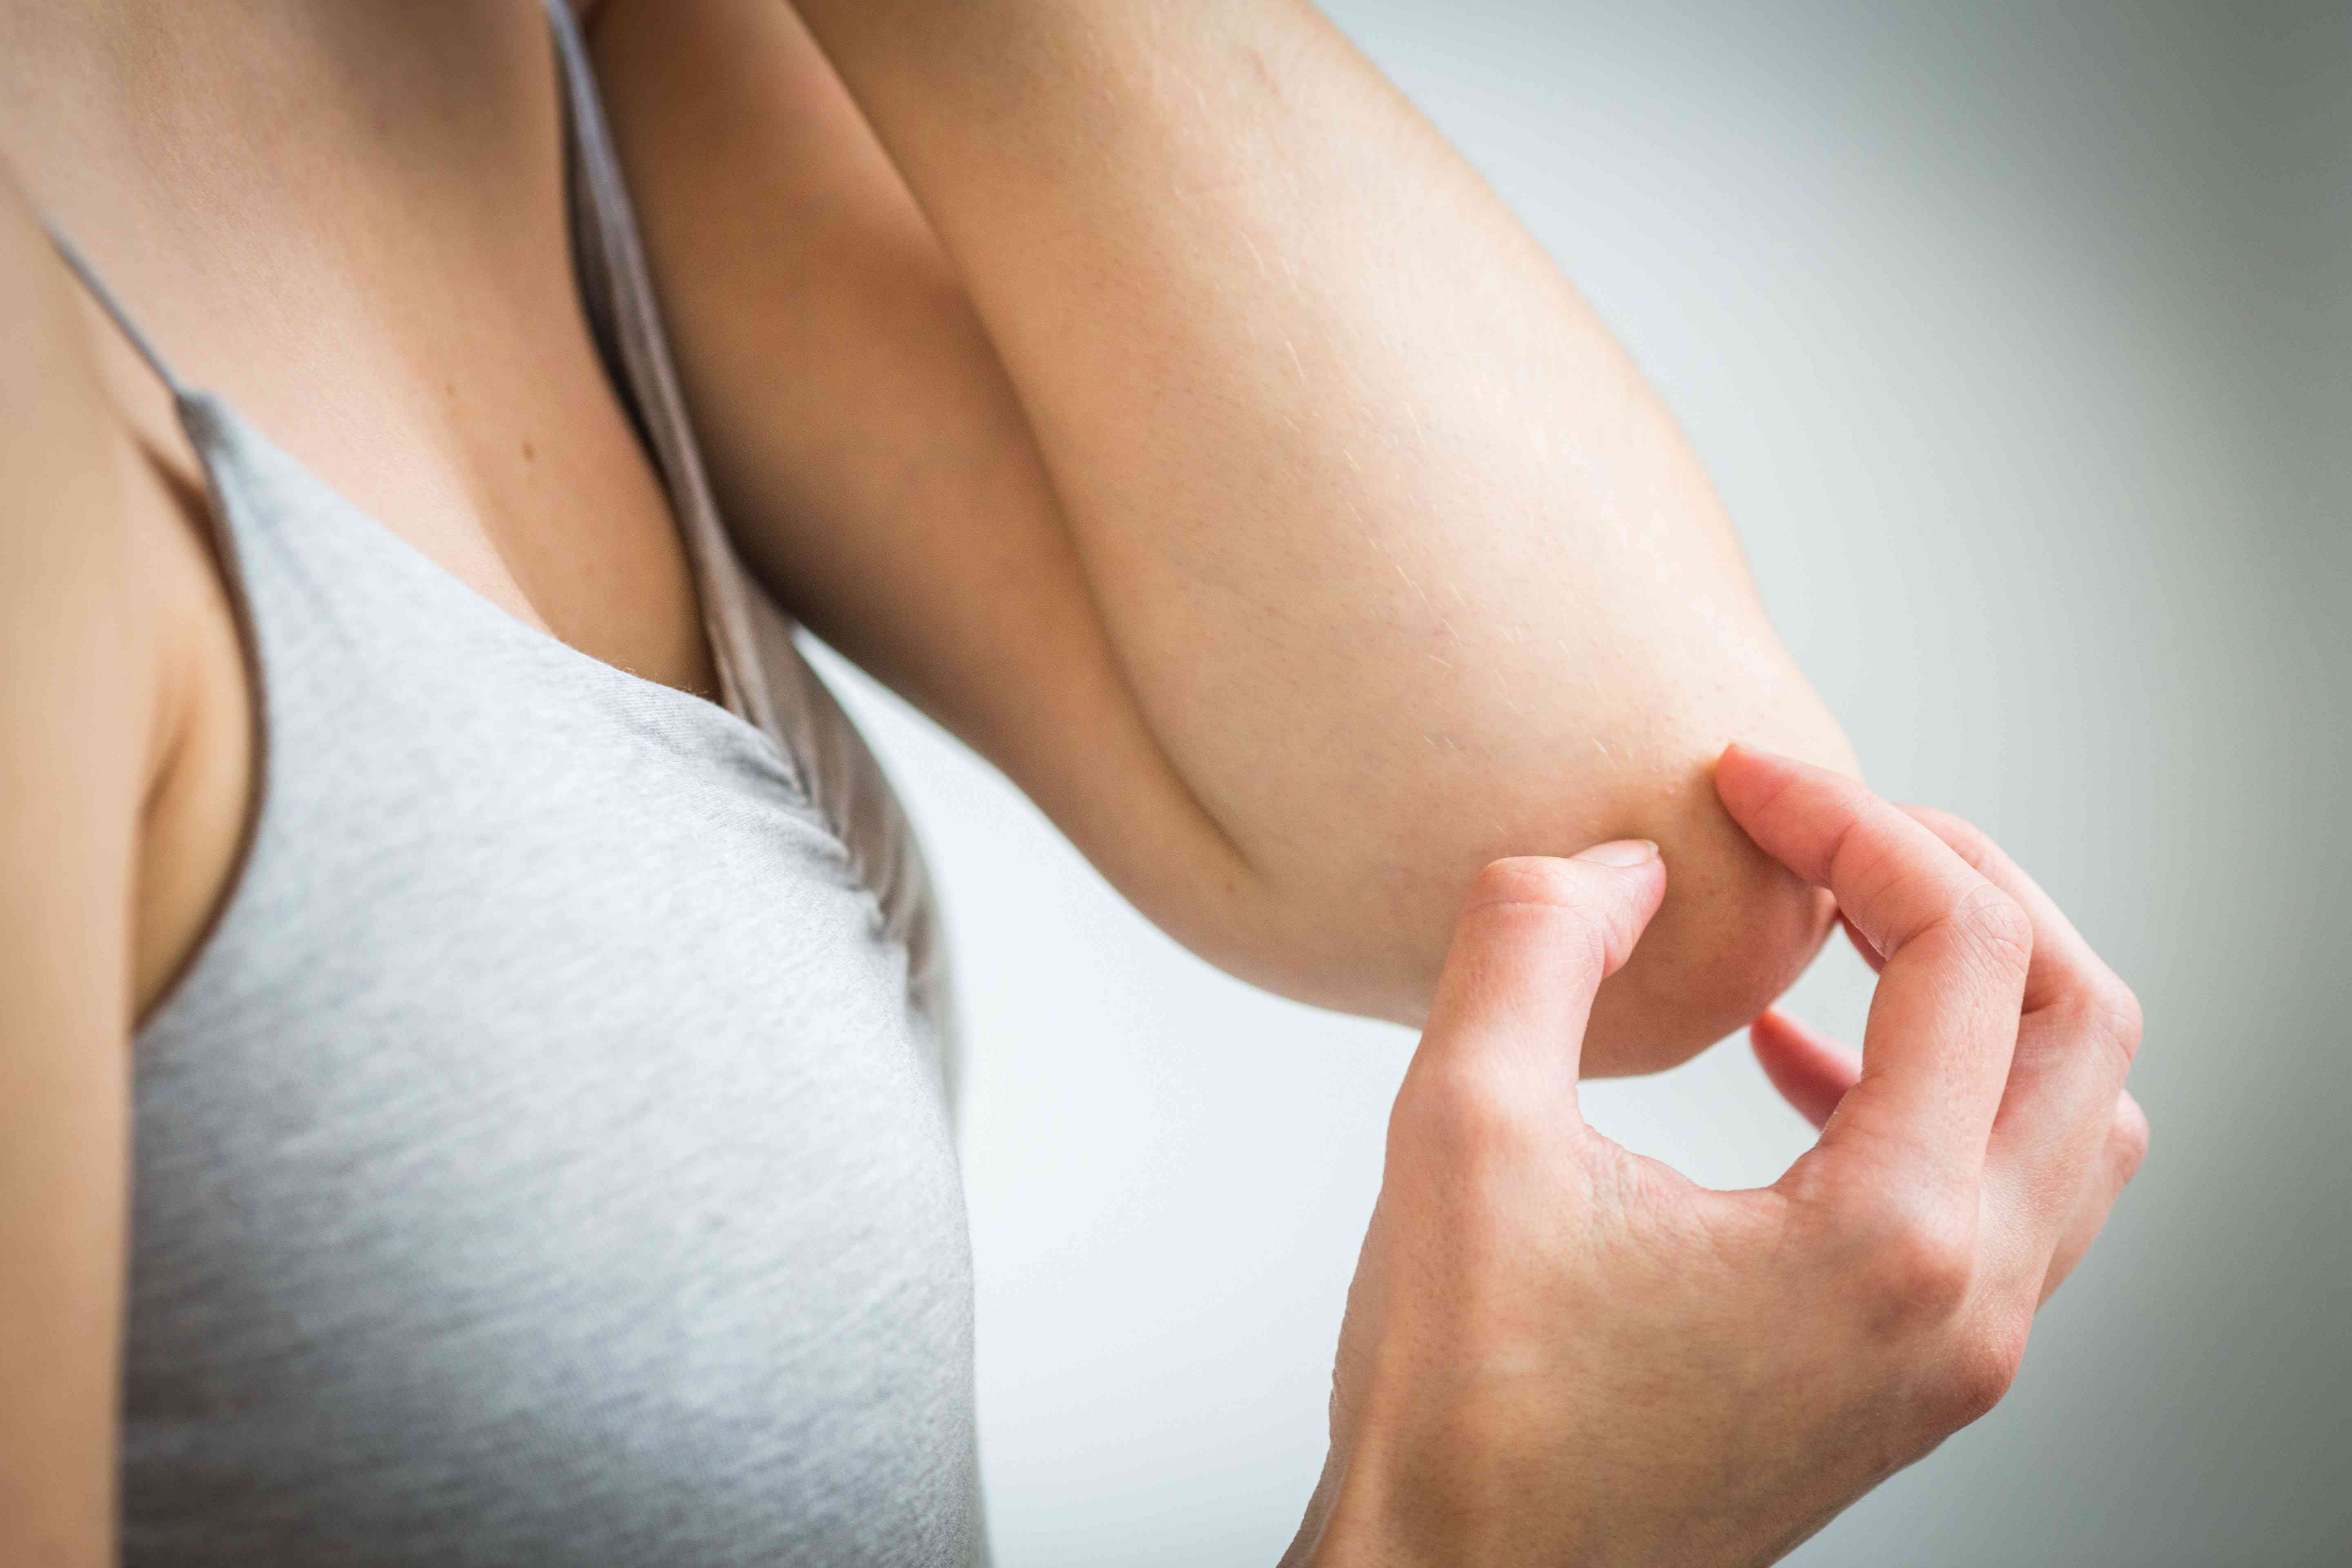 Woman touching arm near elbow joint